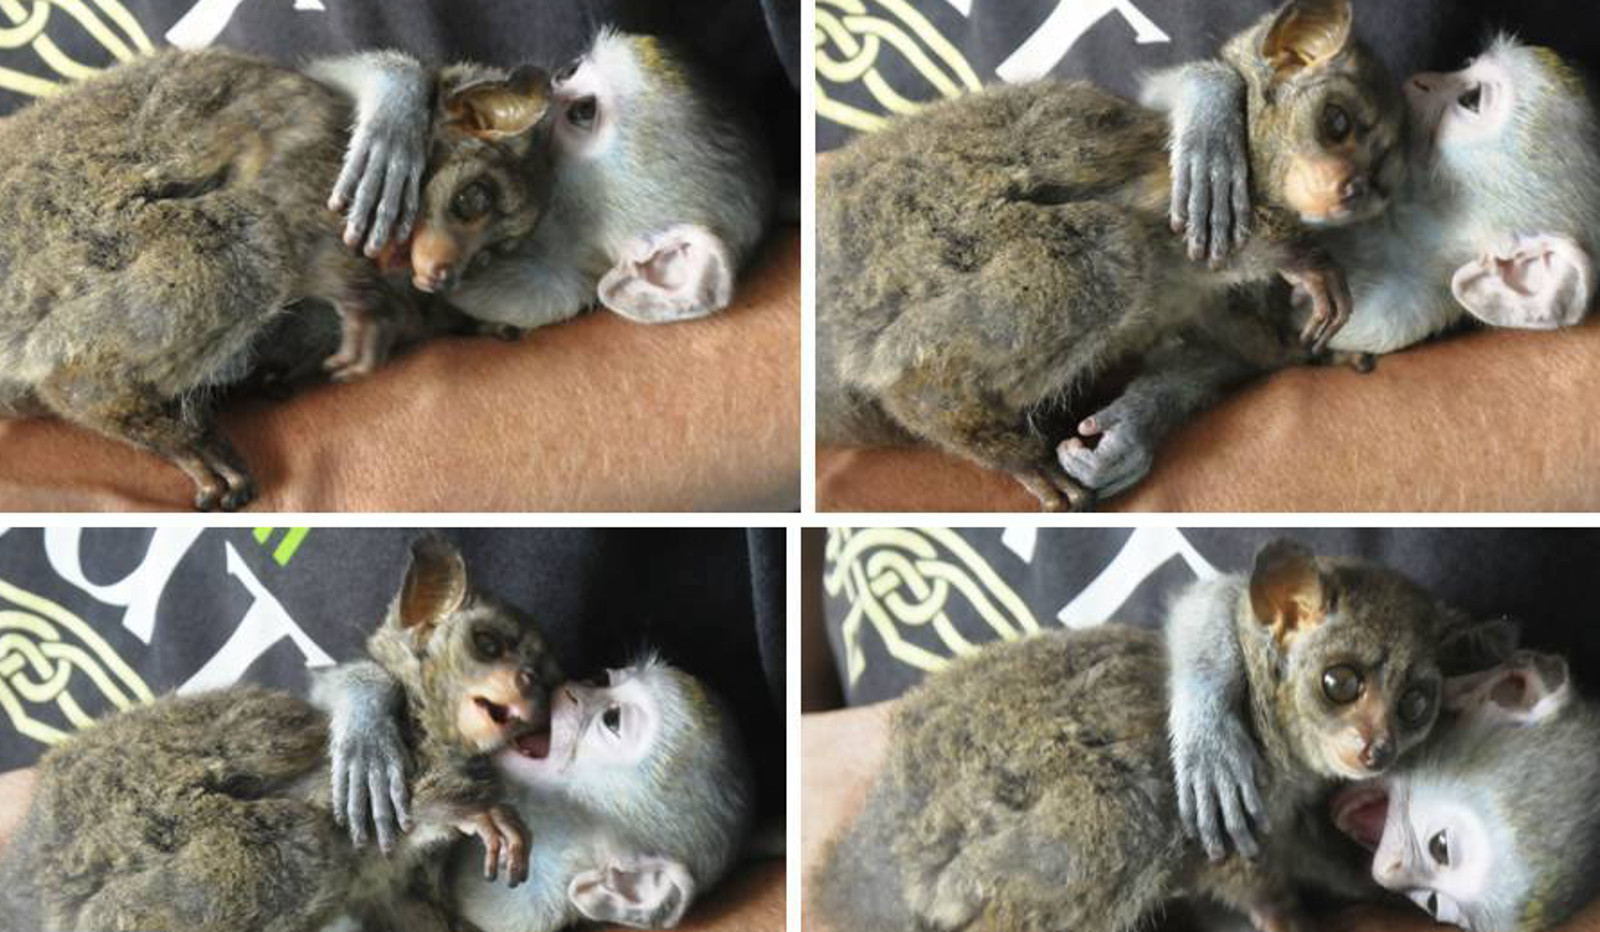 Healing With the Help of Friendship: 2 Rescued Orphan Primates Form an Amazing Bond